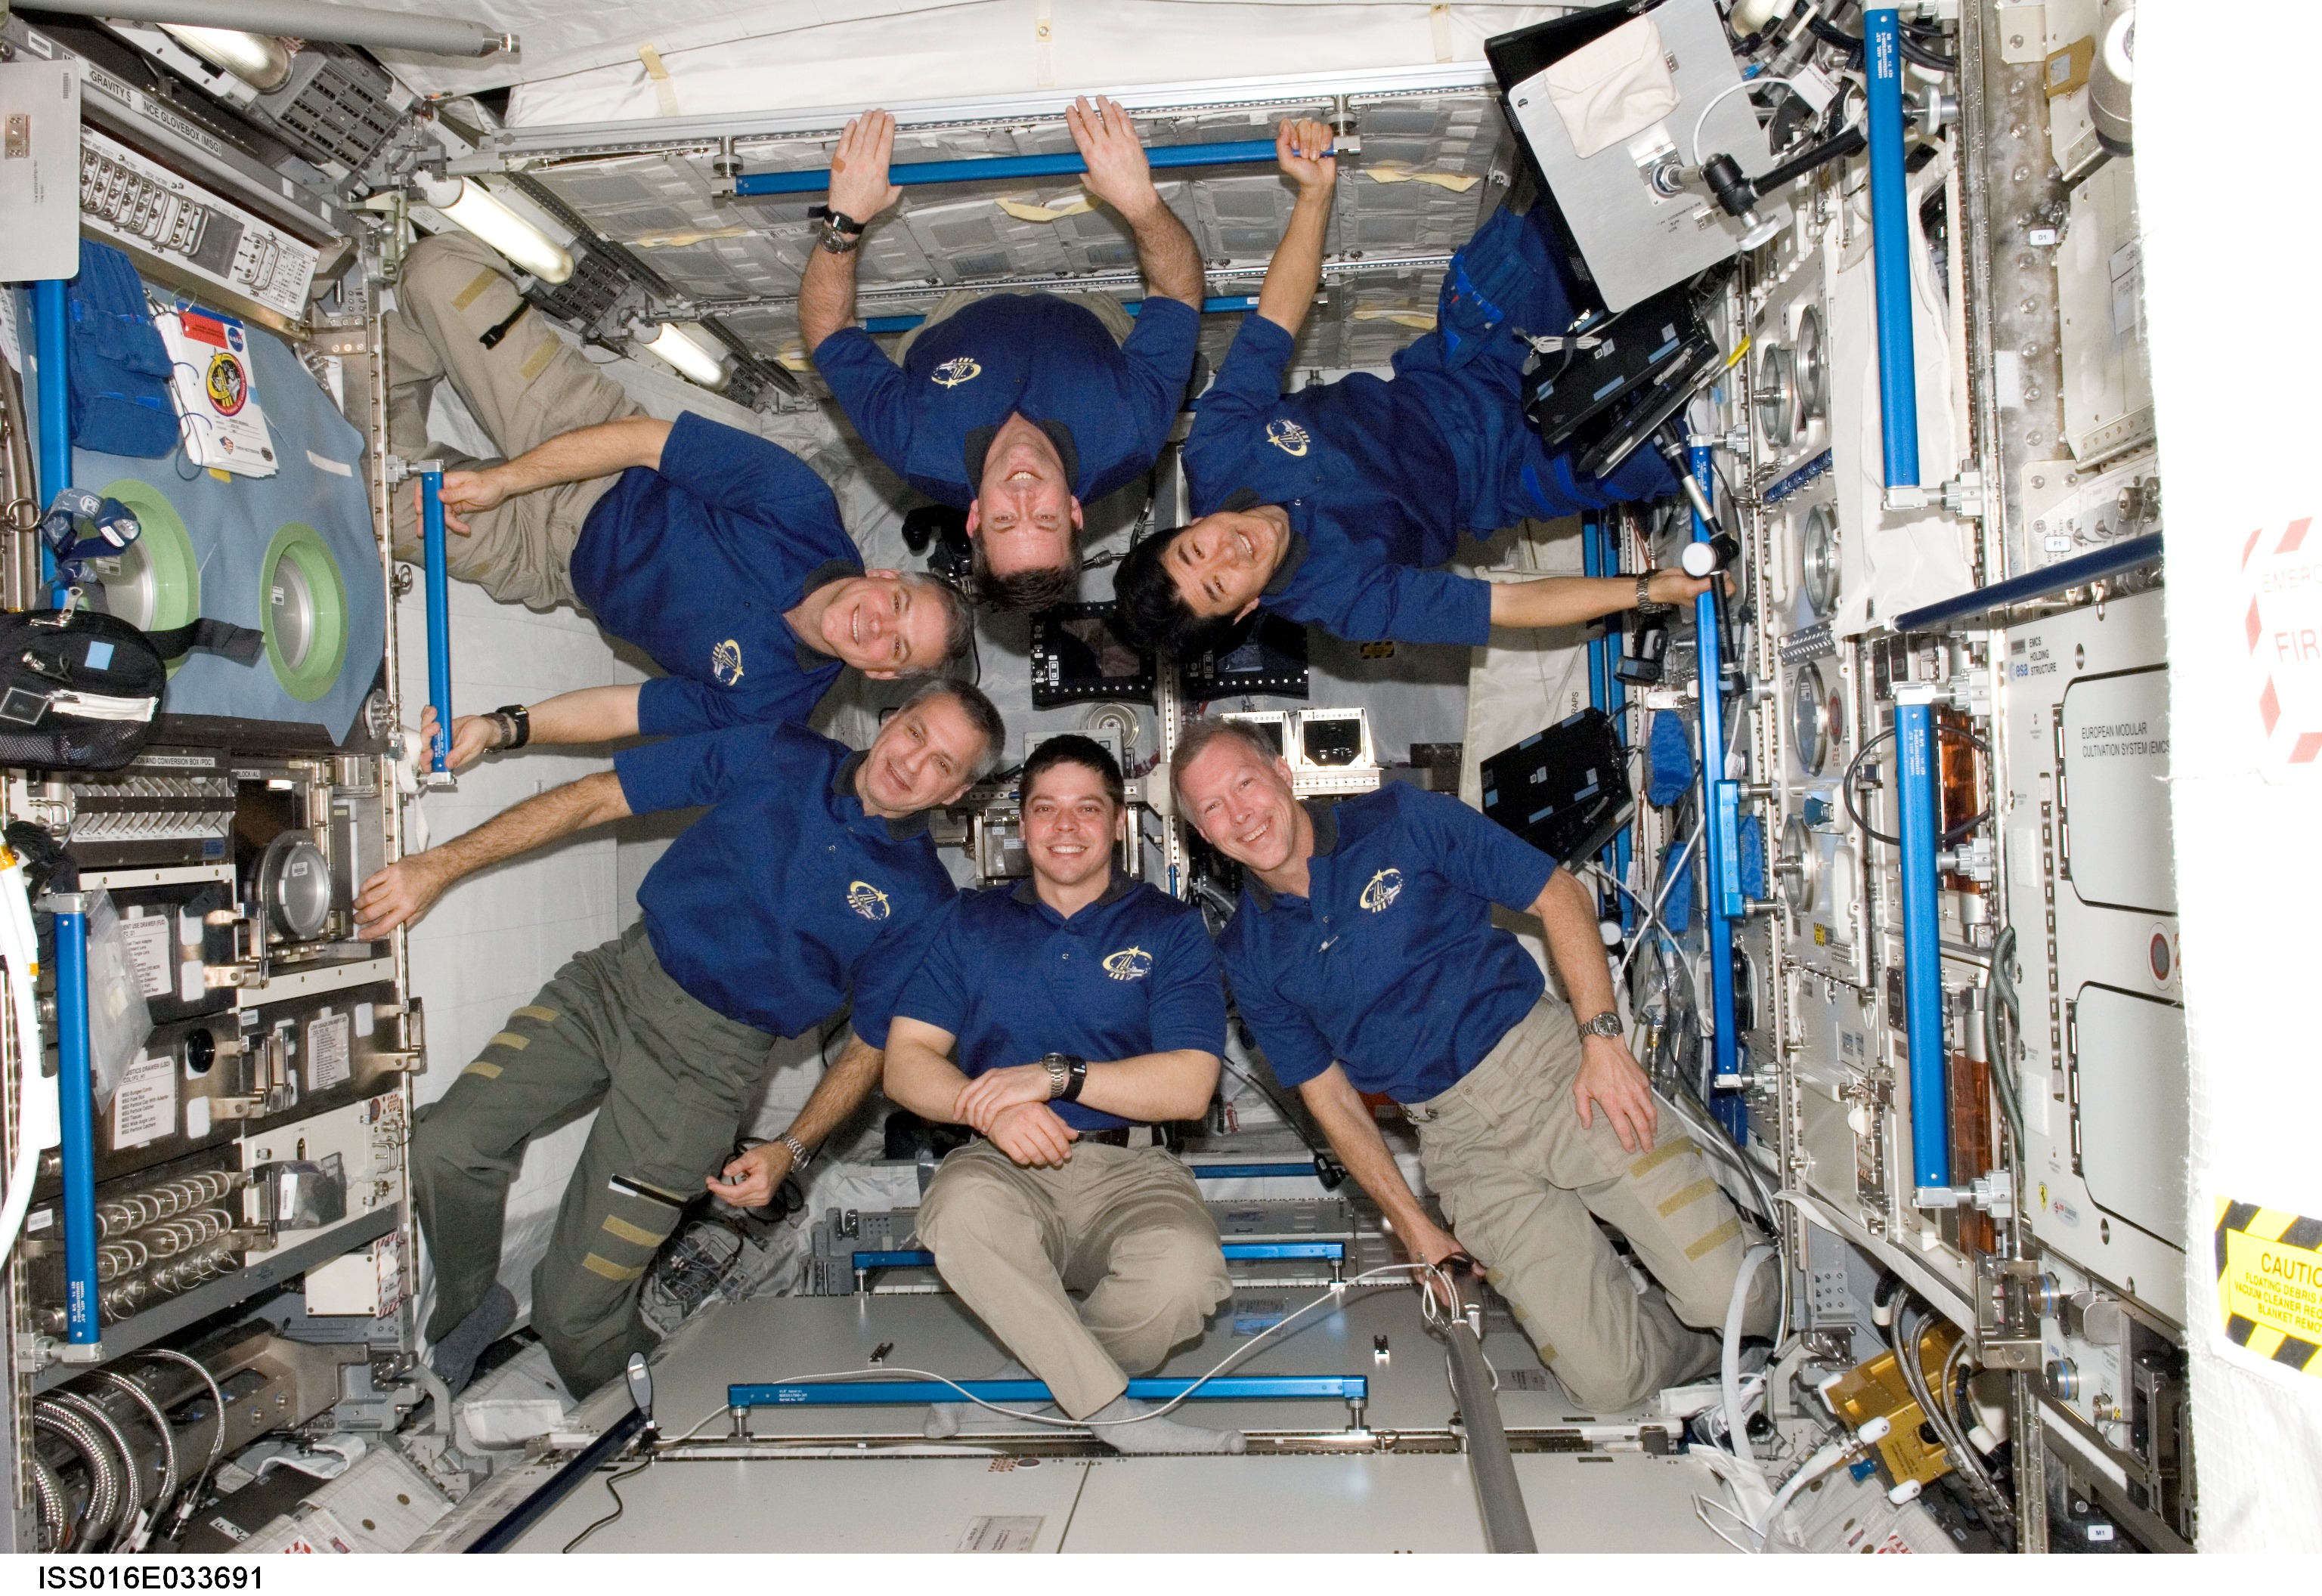 current astronauts in space station - photo #20